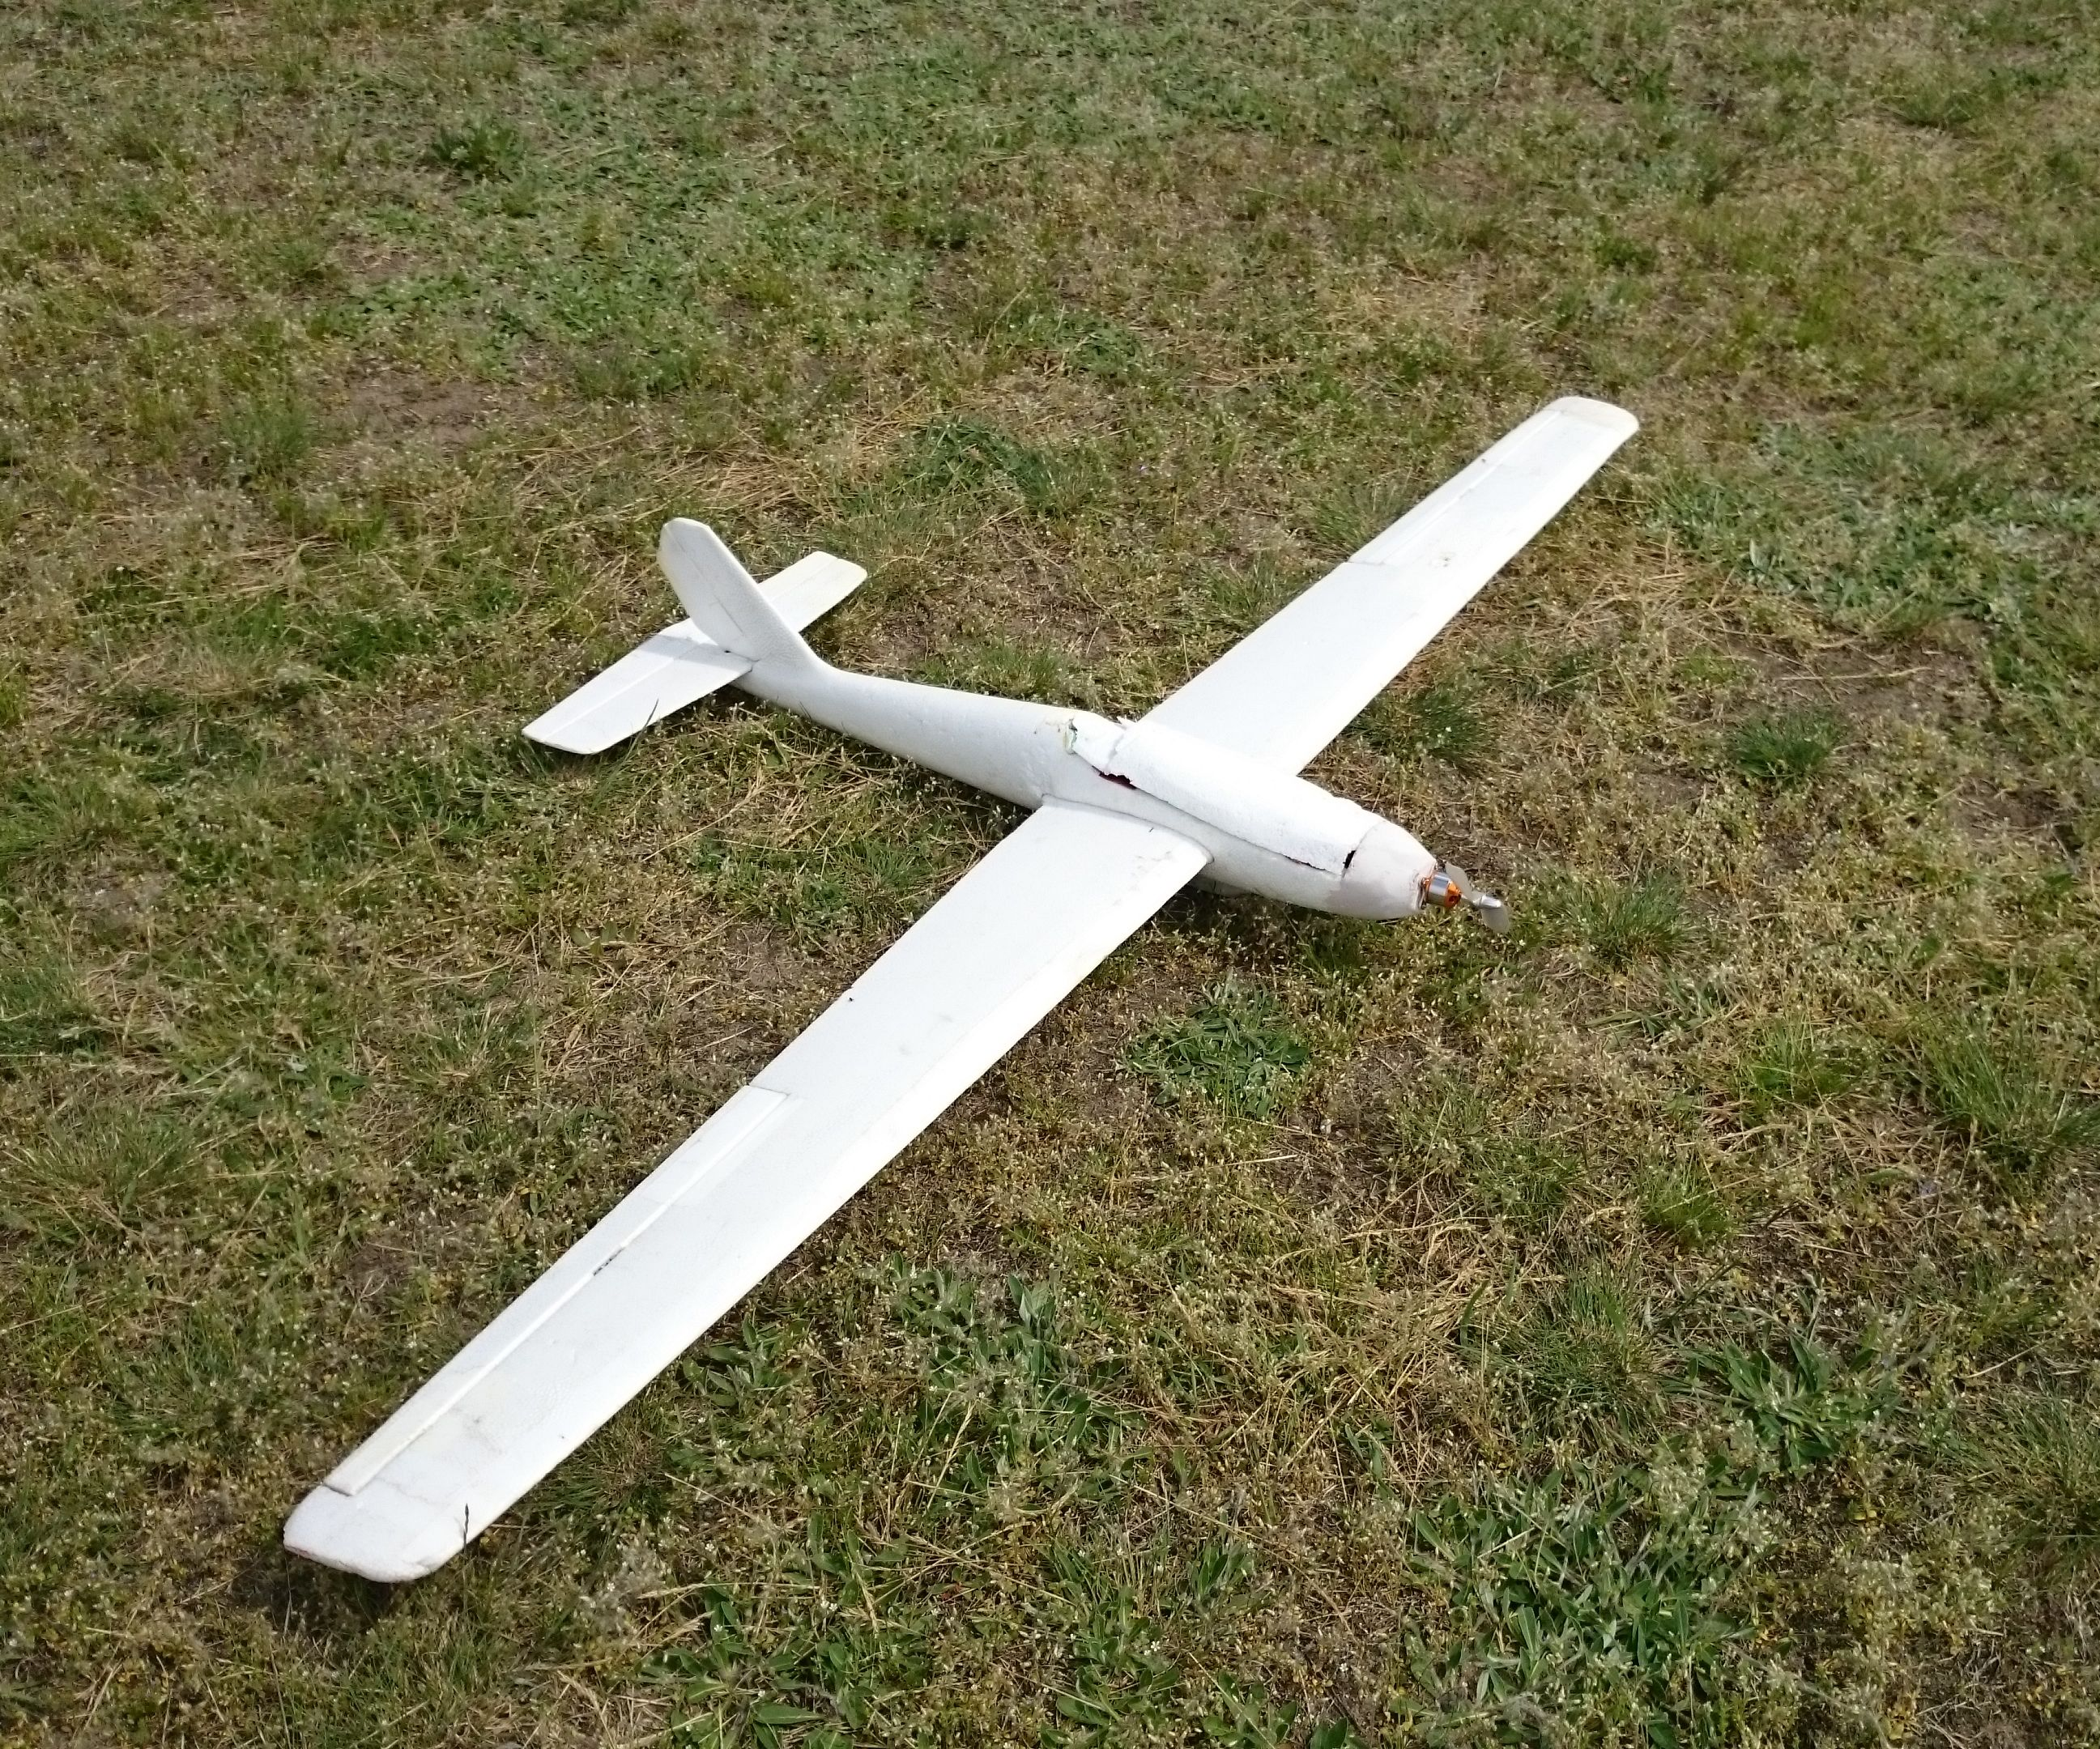 How To Make Rc Plane 10 Steps With Pictures Instructables